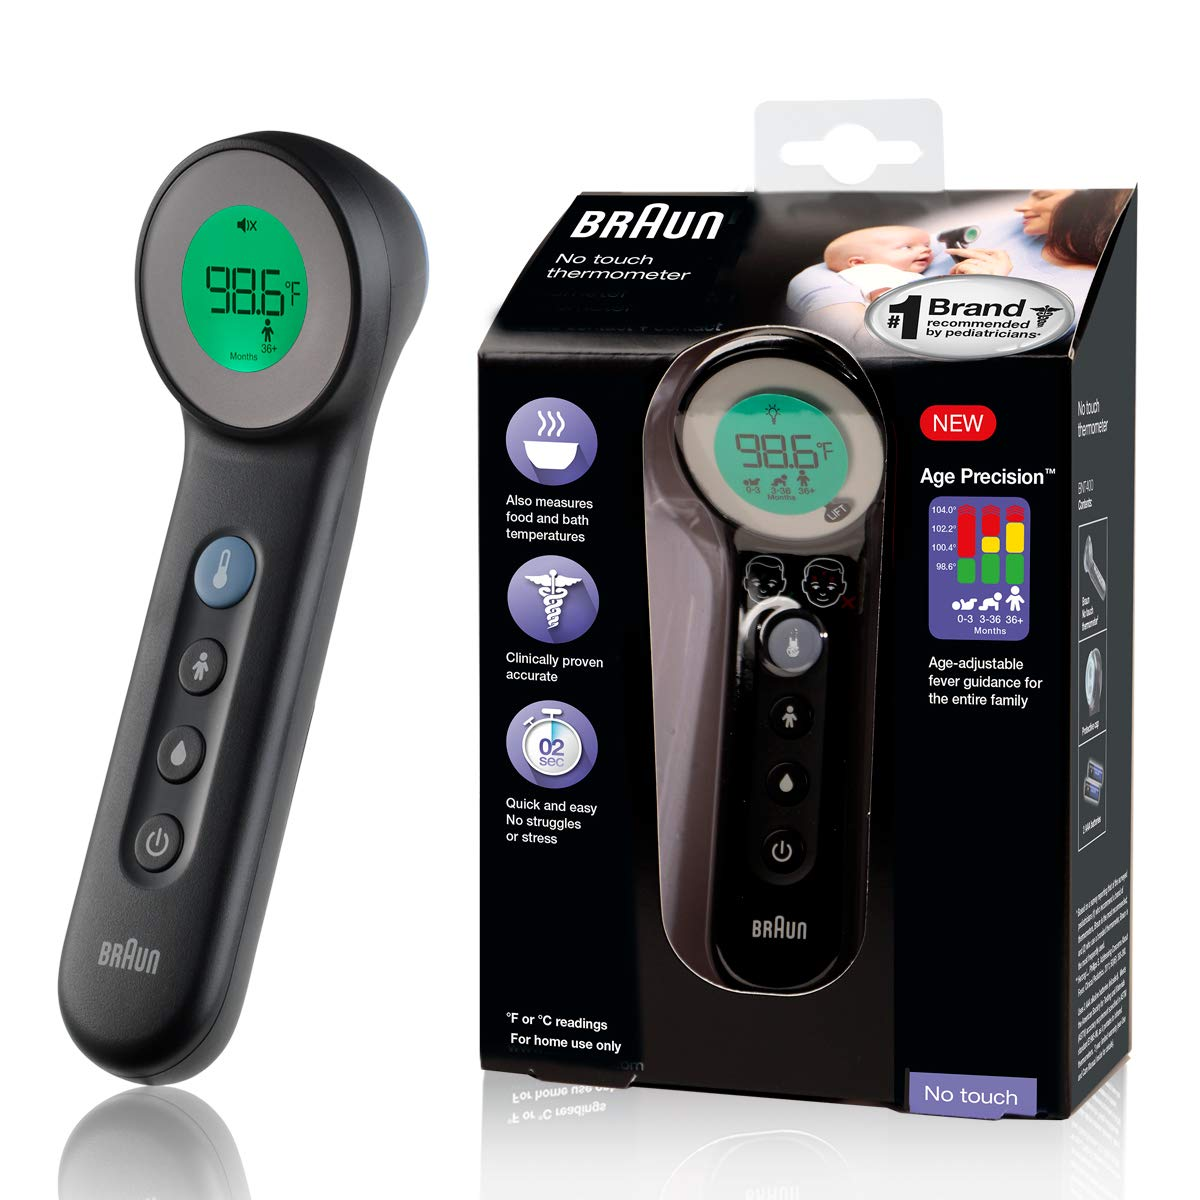 Braun No Touch 3-in-1 Thermometer - Touchless Thermometer for Adults, Babies, Toddlers and Kids – Fast, Reliable, and Accurate Results